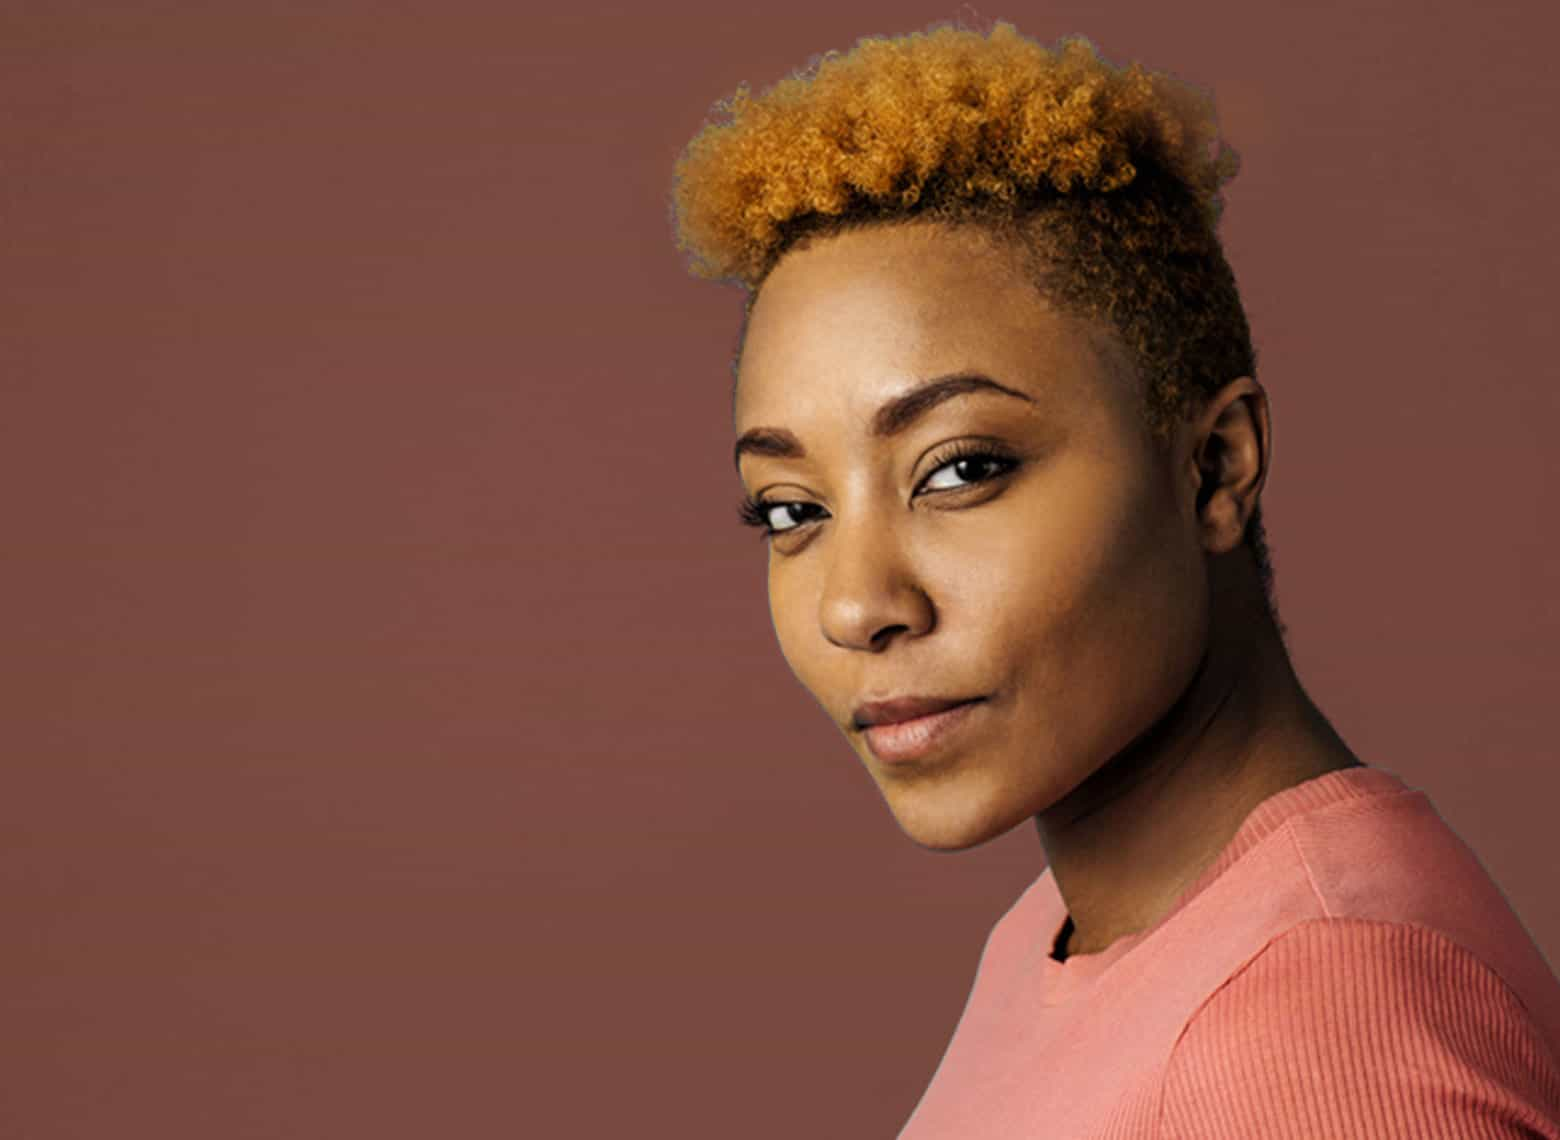 woman with tapered cut